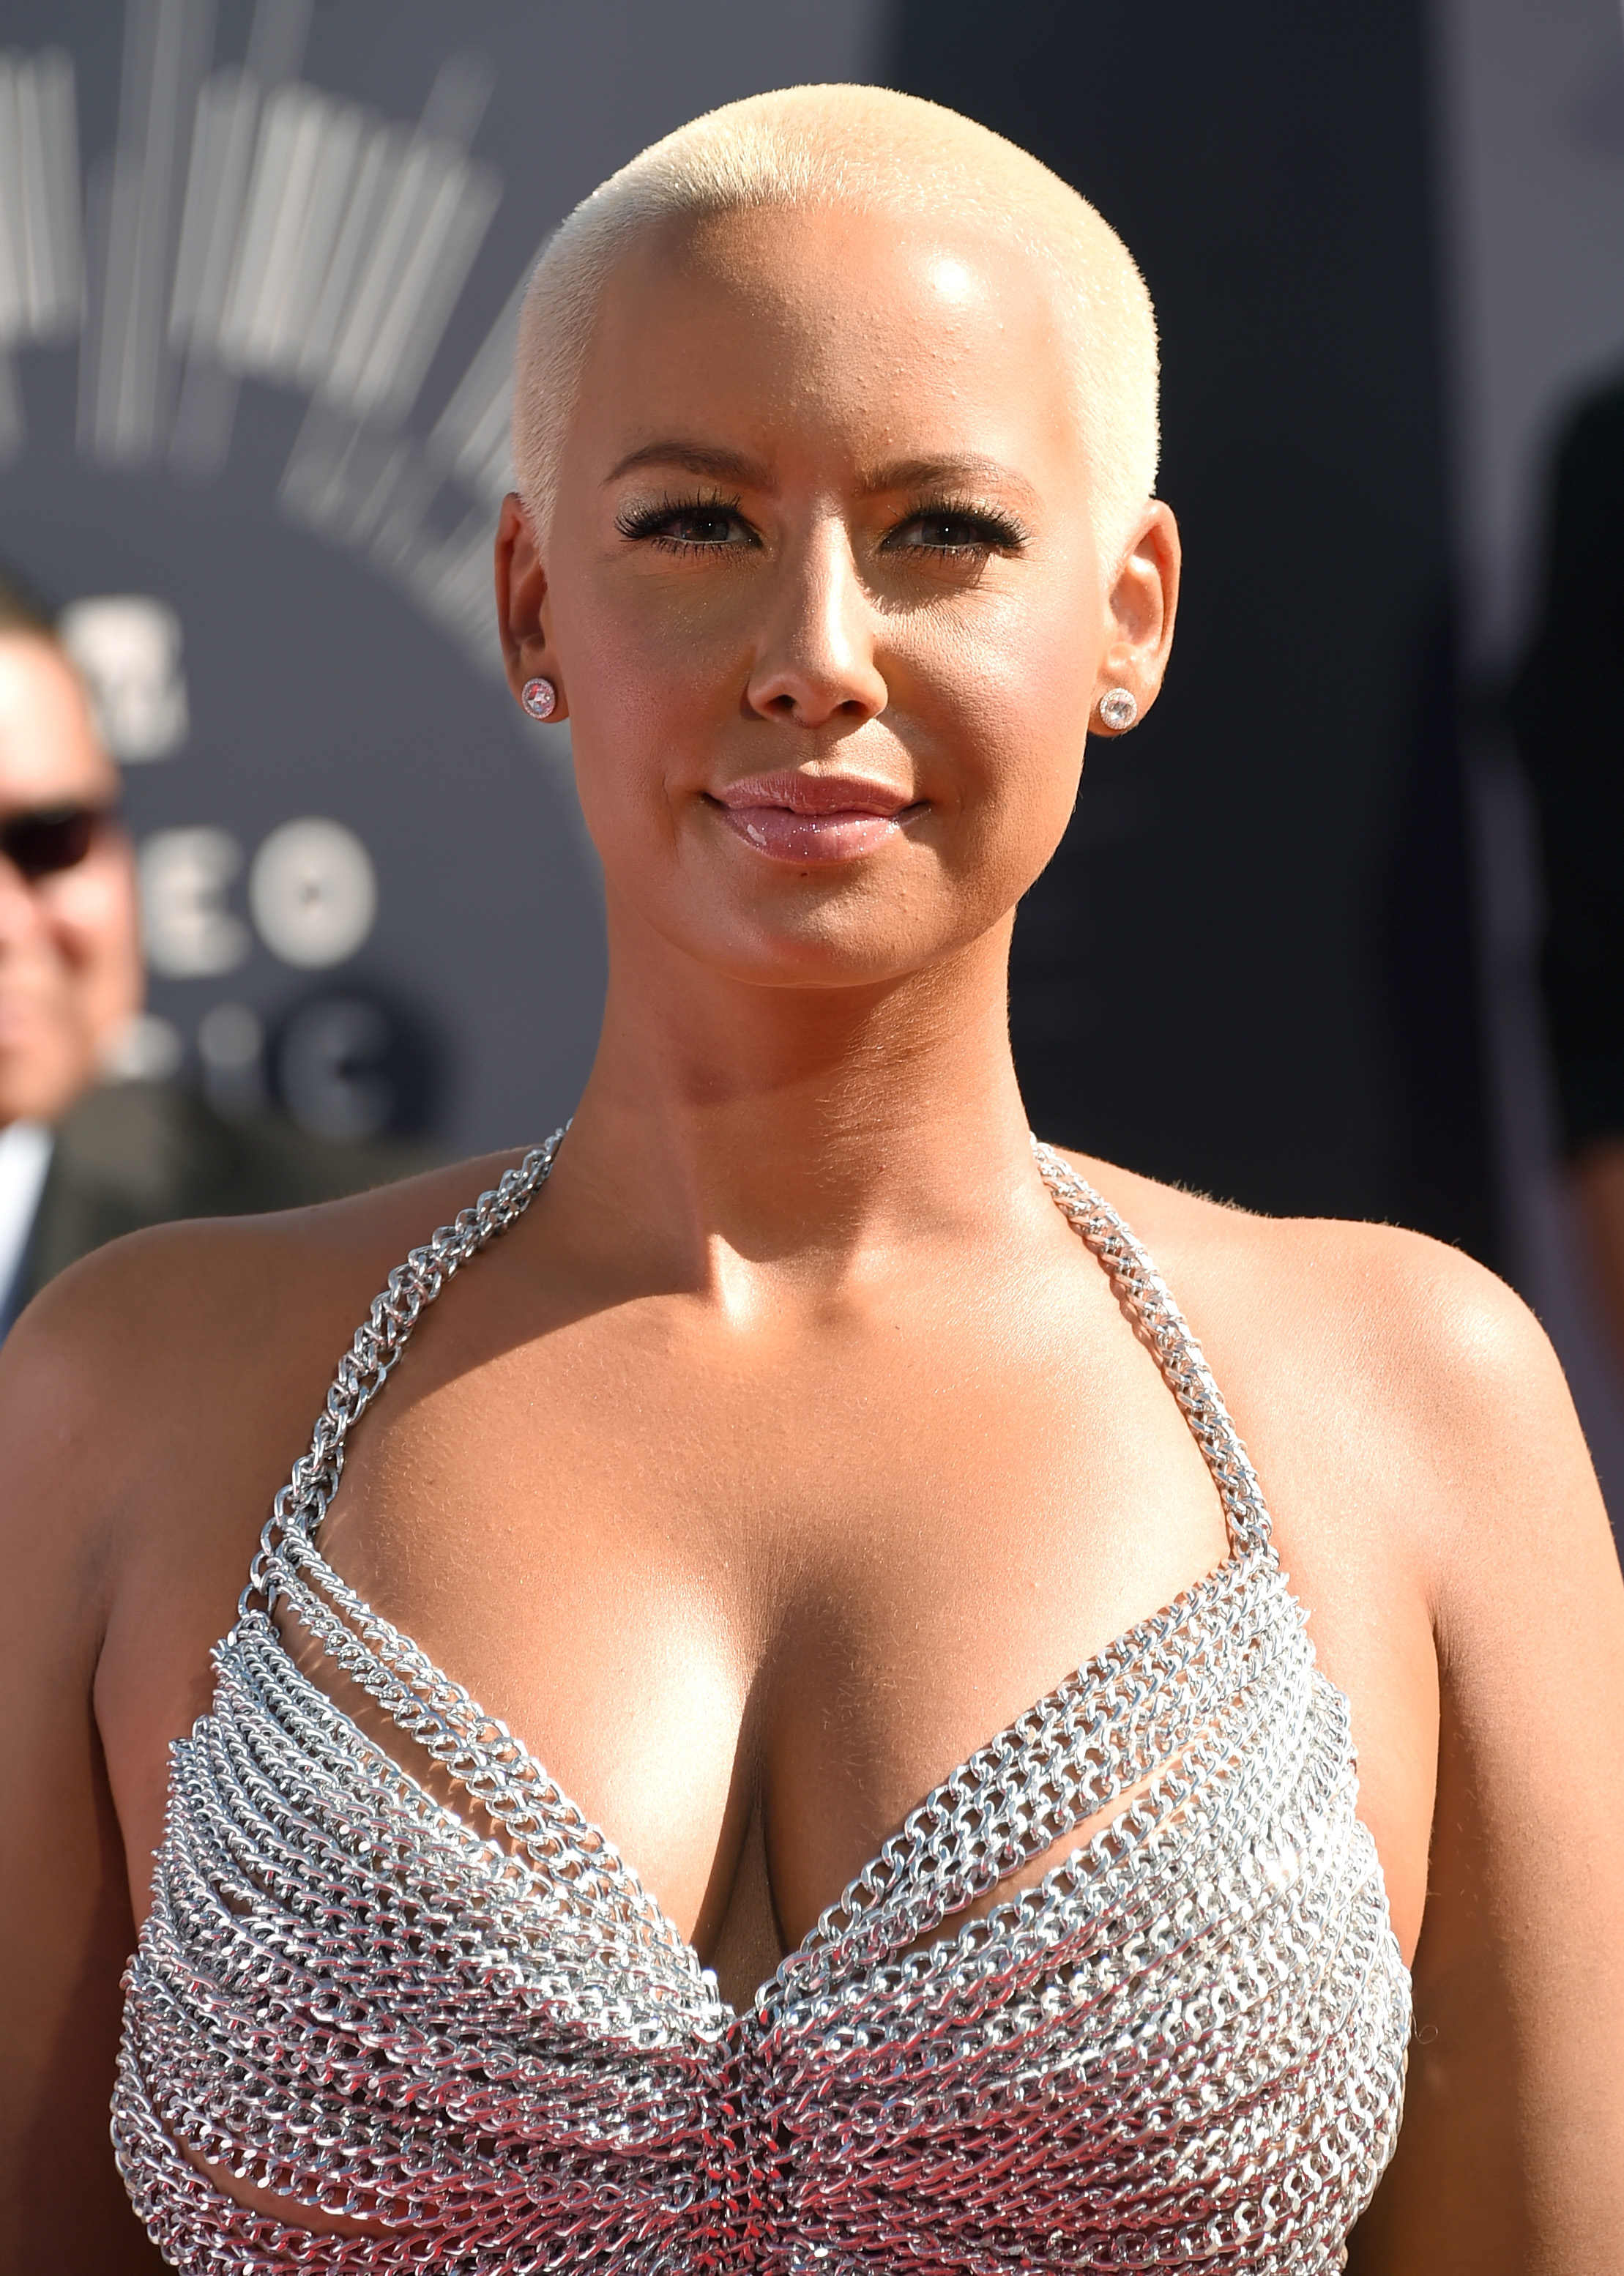 Amber Roses Vma Outfit Is A Total Rose Mcgowan Exhibitionist